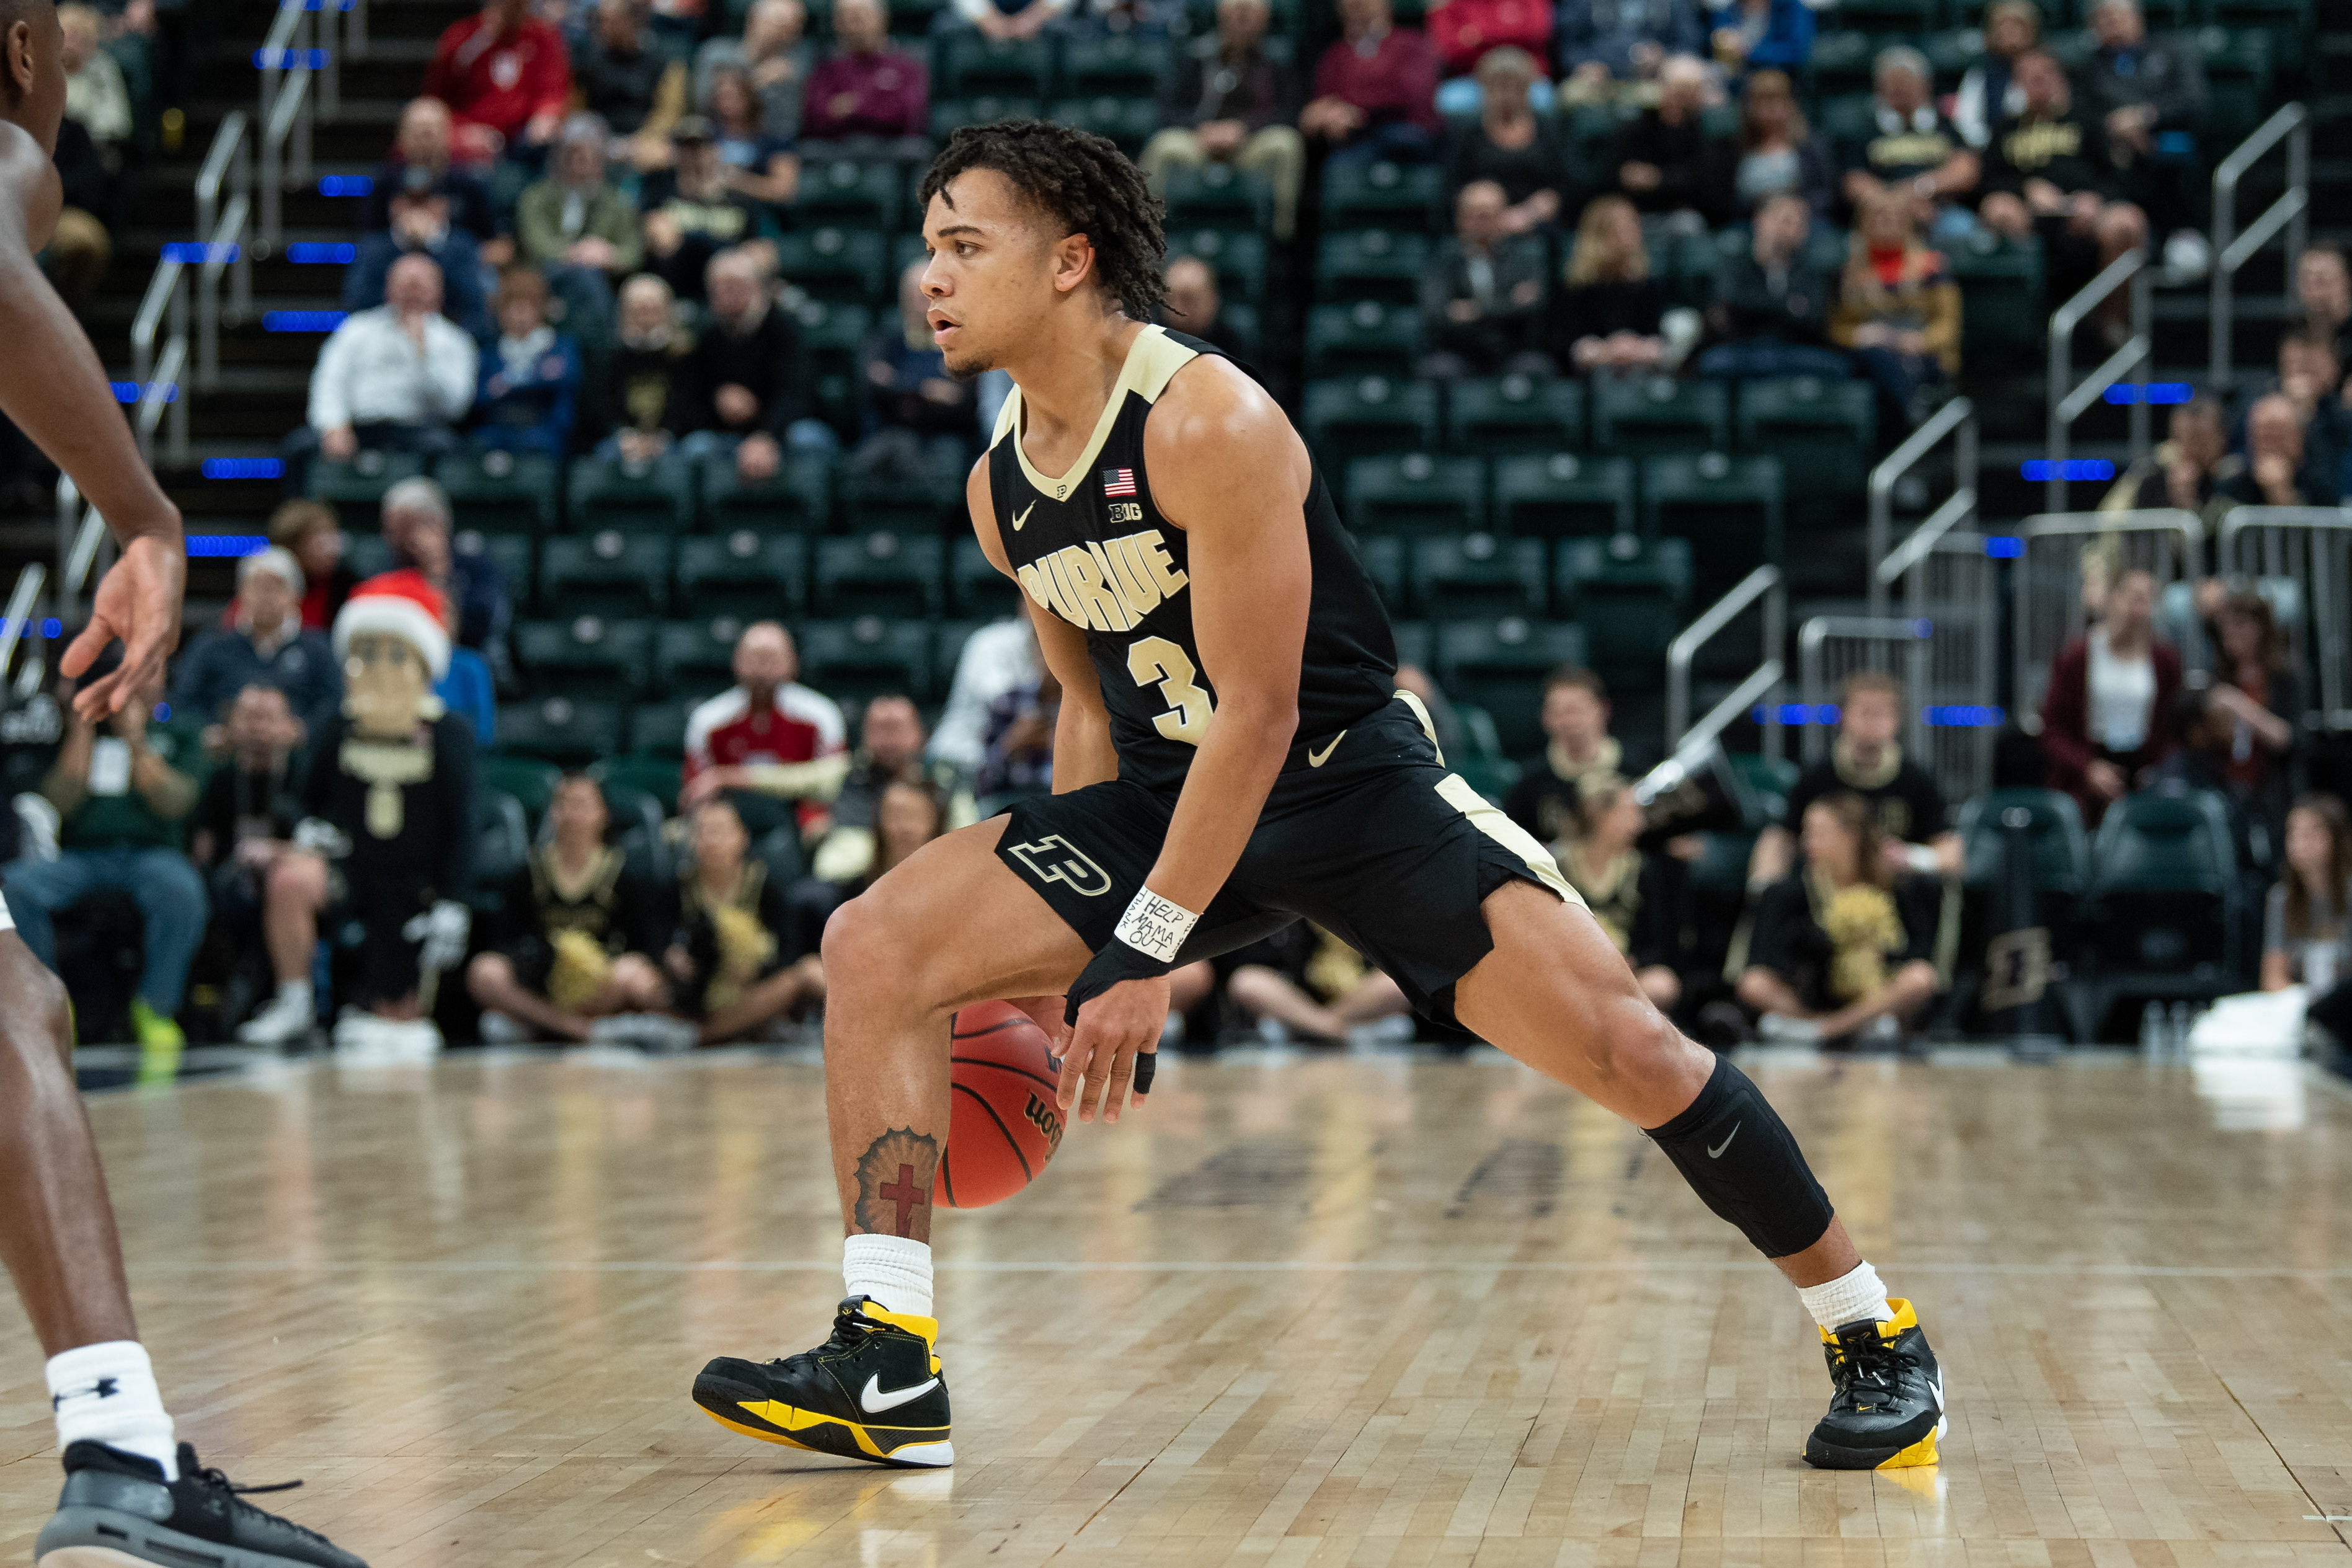 December 15, 2018 - Indianapolis, IN, U.S. - INDIANAPOLIS, IN - DECEMBER 15: Purdue Boilermakers guard Carsen Edwards (3) dribbles on the perimeter during the Crossroads Classic basketball game between the Purdue Boilermakers and Notre Dame Fighting Irish on December 15, 2018, at Bankers Life Fieldhouse in Indianapolis, IN. (Photo by Zach Bolinger/Icon Sportswire) (Credit Image: © Zach Bolinger/Icon SMI via ZUMA Press)